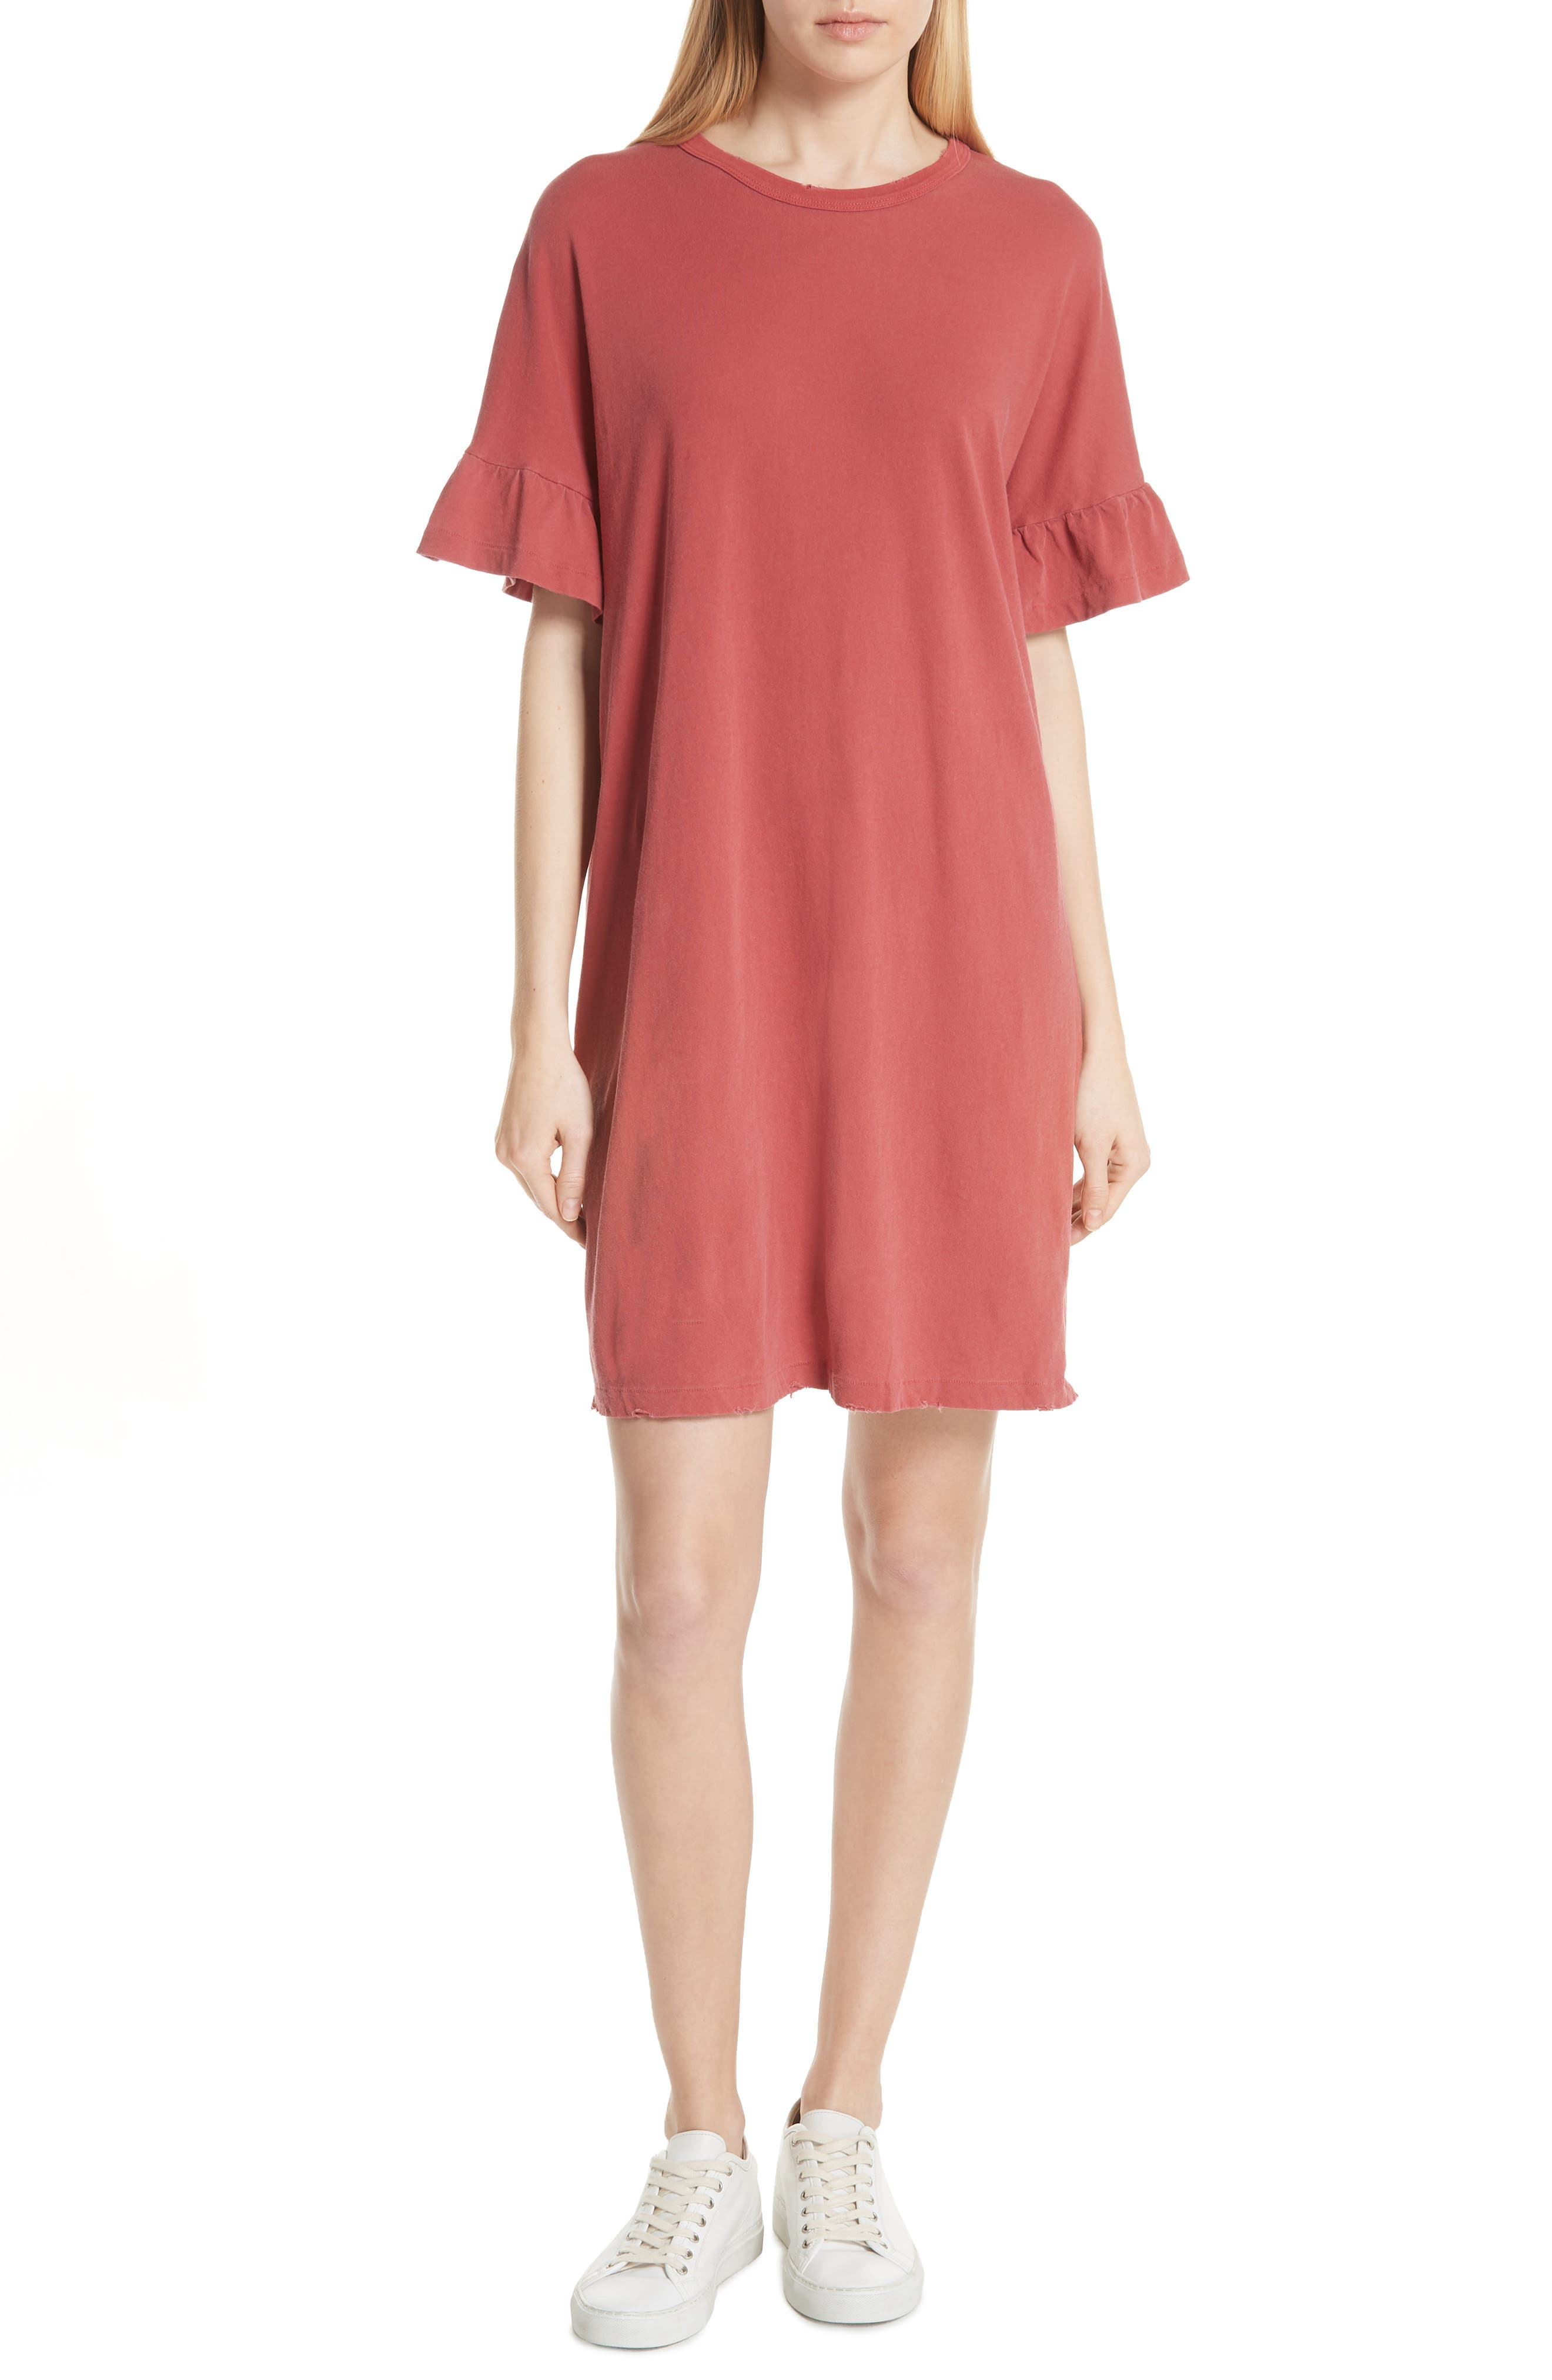 Ruffle Sleeve T-Shirt Dress,                         Main,                         color,